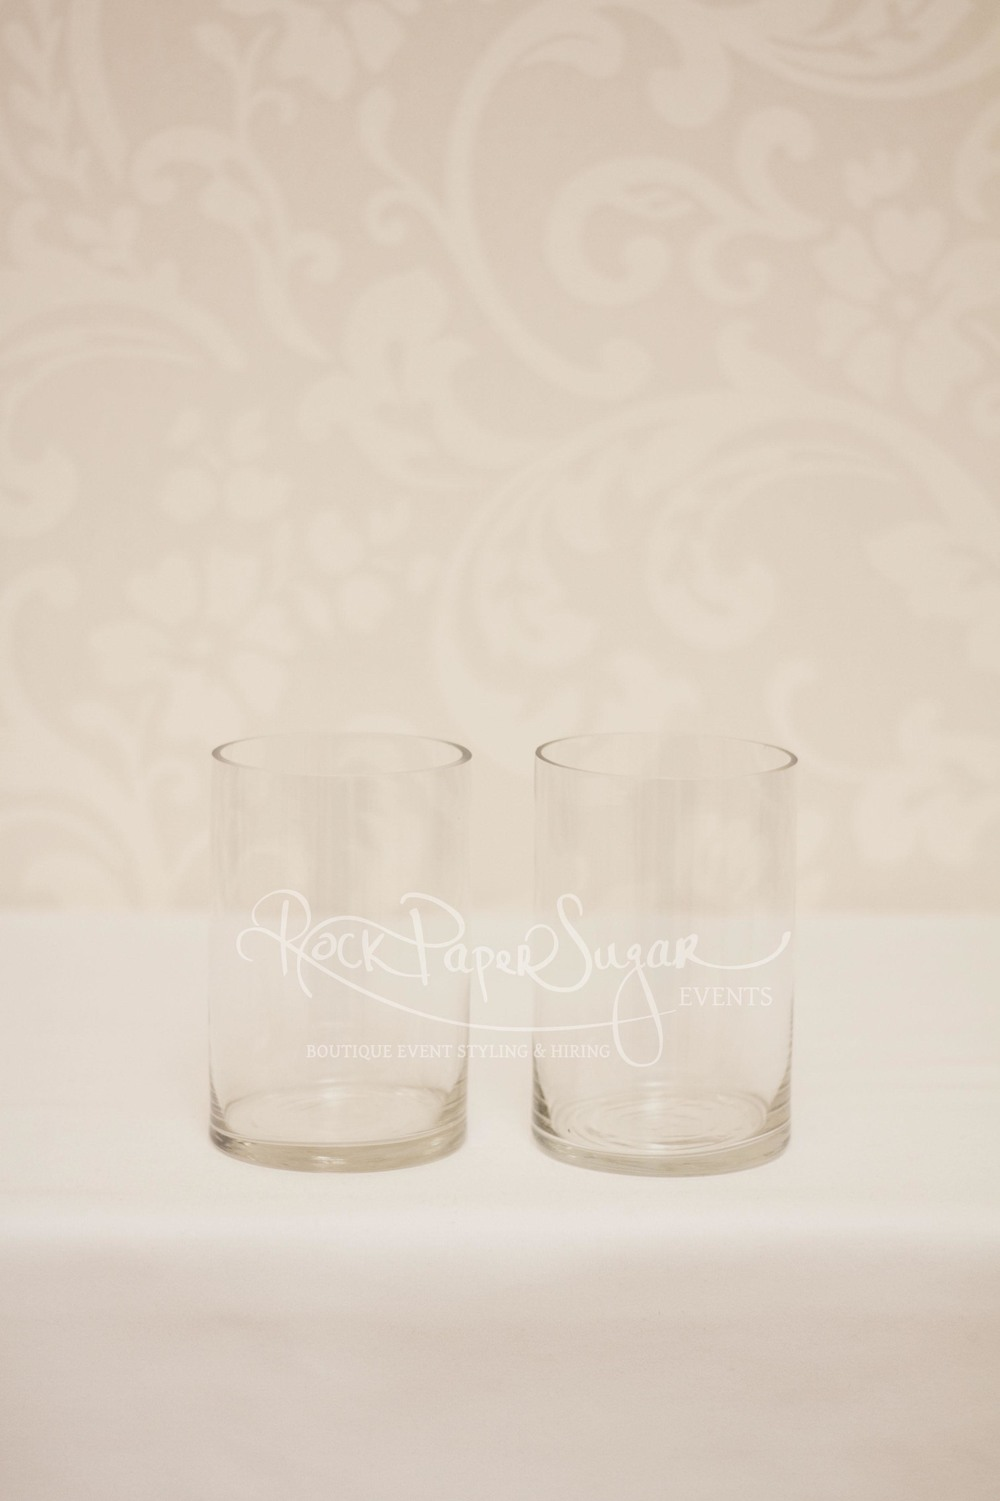 Rock Paper Sugar Events Glassware 010.jpg